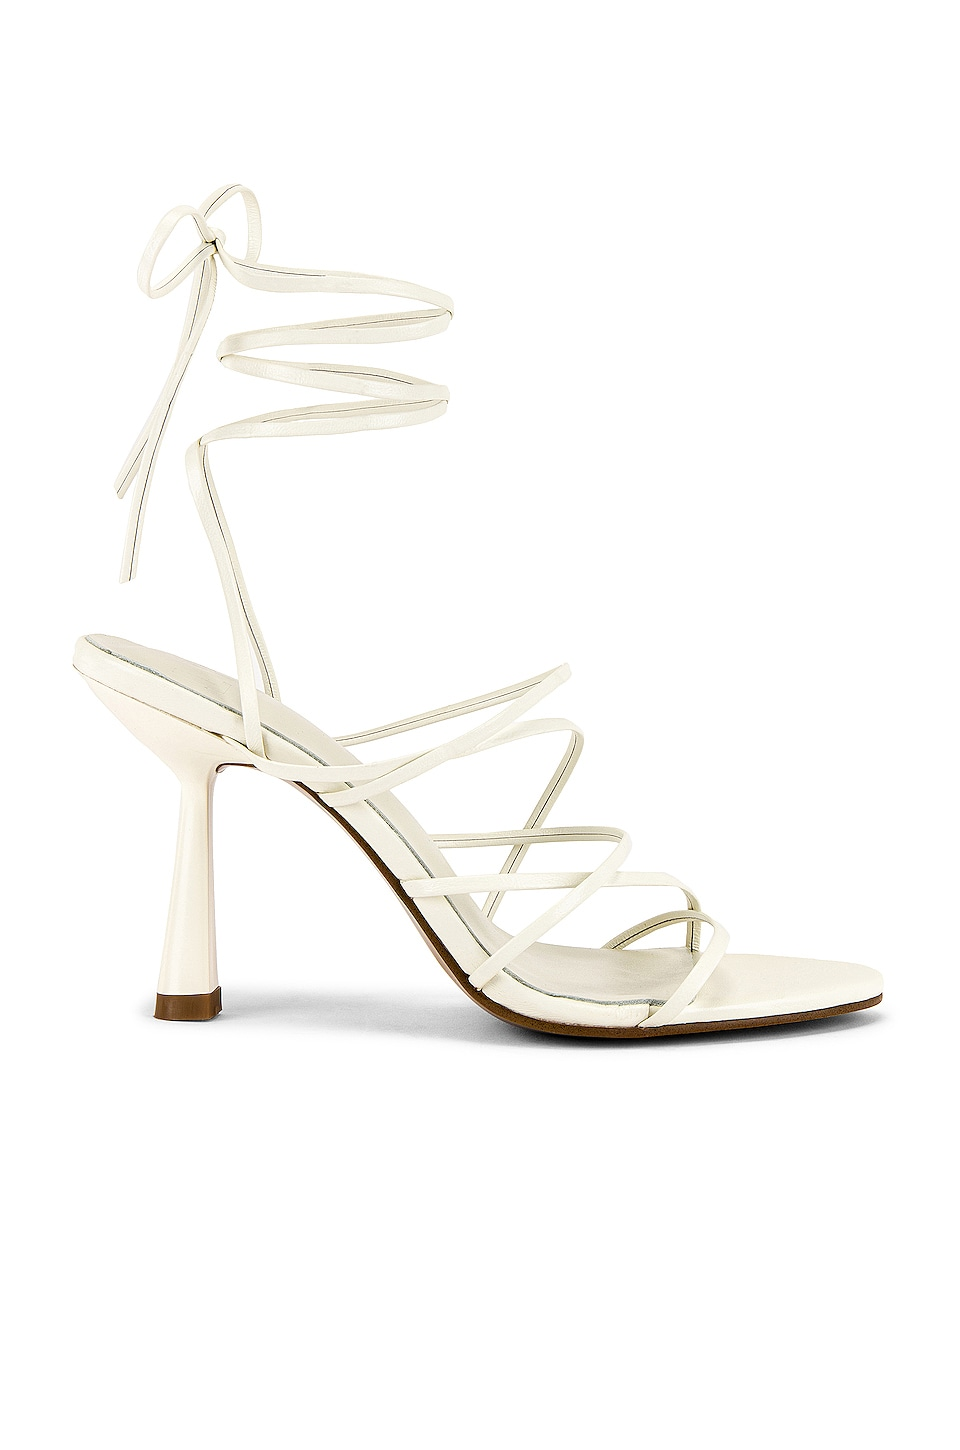 LPA Basile Heel in Bone White